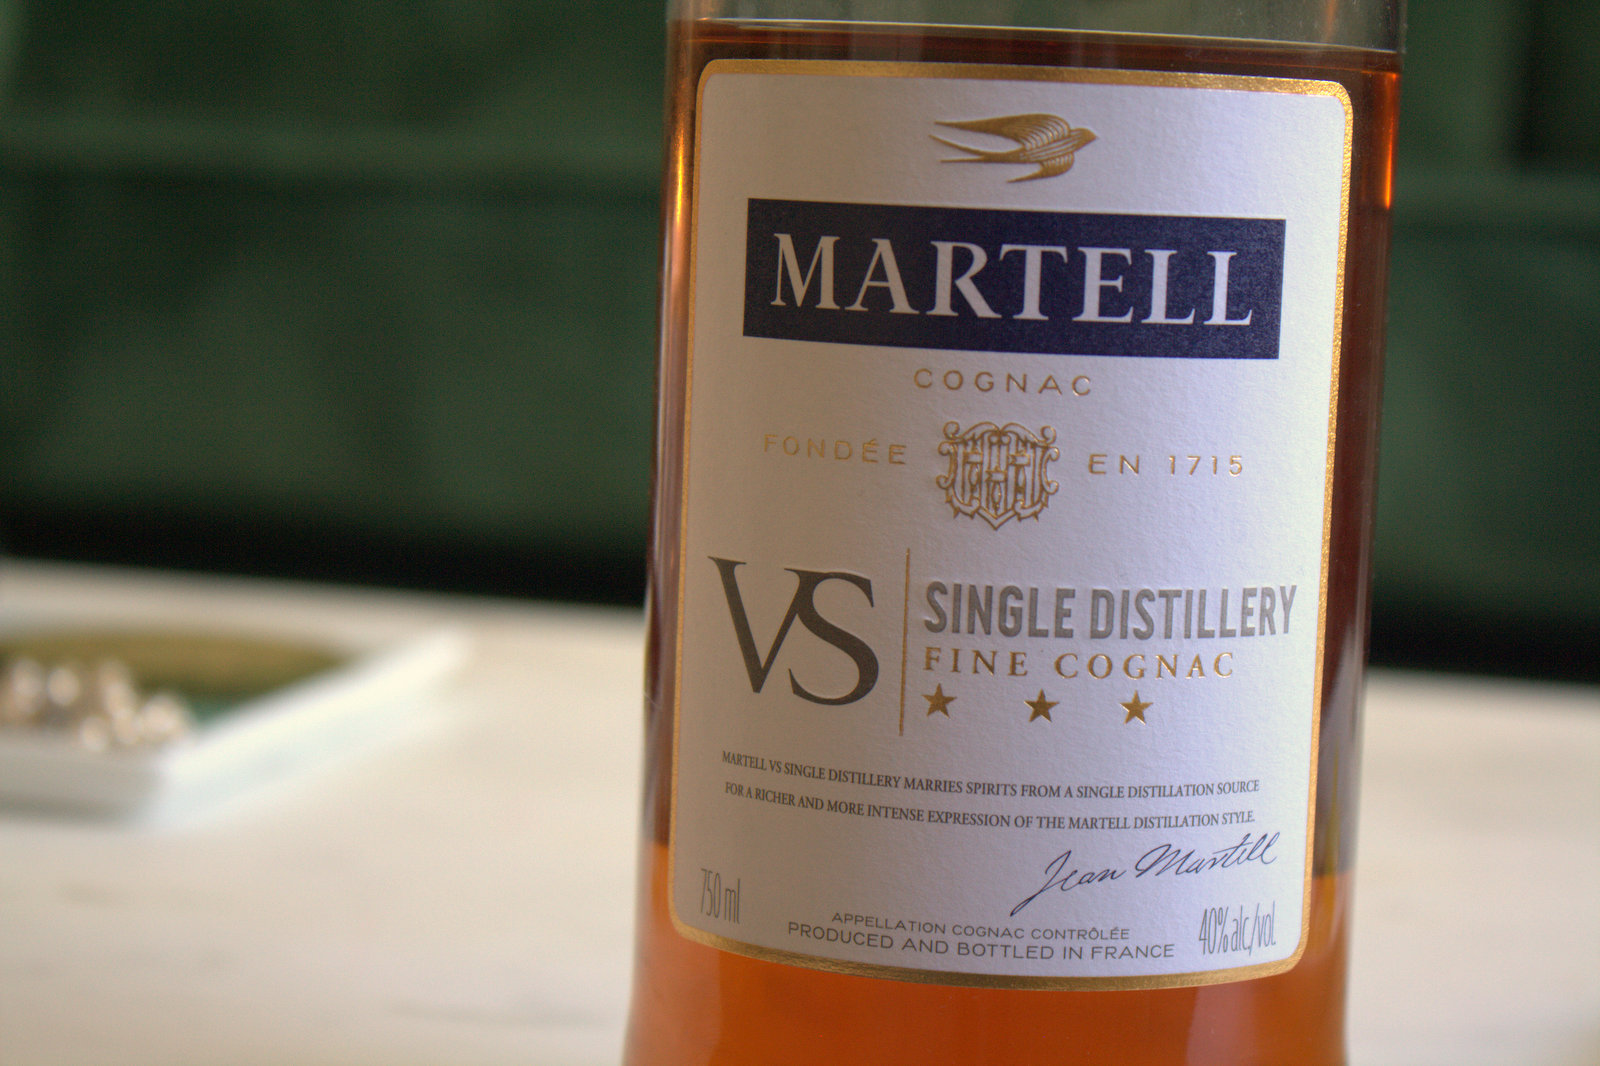 martell singles Martell vs single distillery is blended from eaux-de-vie derived from a single distillation source - one of martell's carefully selected partner distilleries in the cognac region sharing the same sensorial profile and taste characteristics, these eaux-de-vie blend together in perfect harmony.